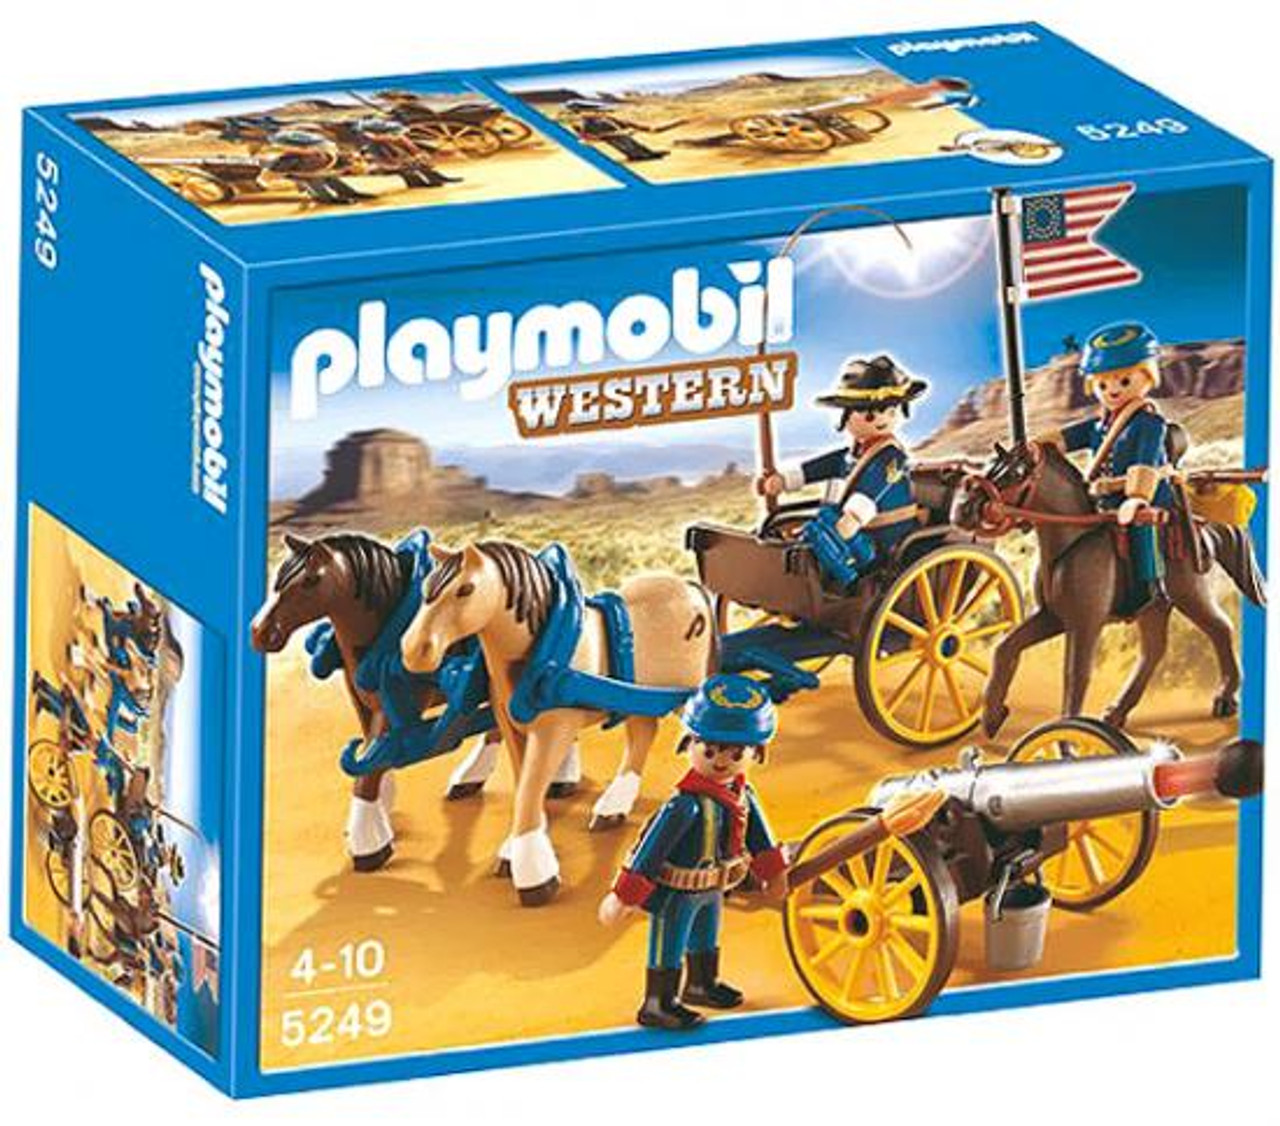 Playmobil Western Horse-Drawn Carriage & Cavalry Rider Set #5249